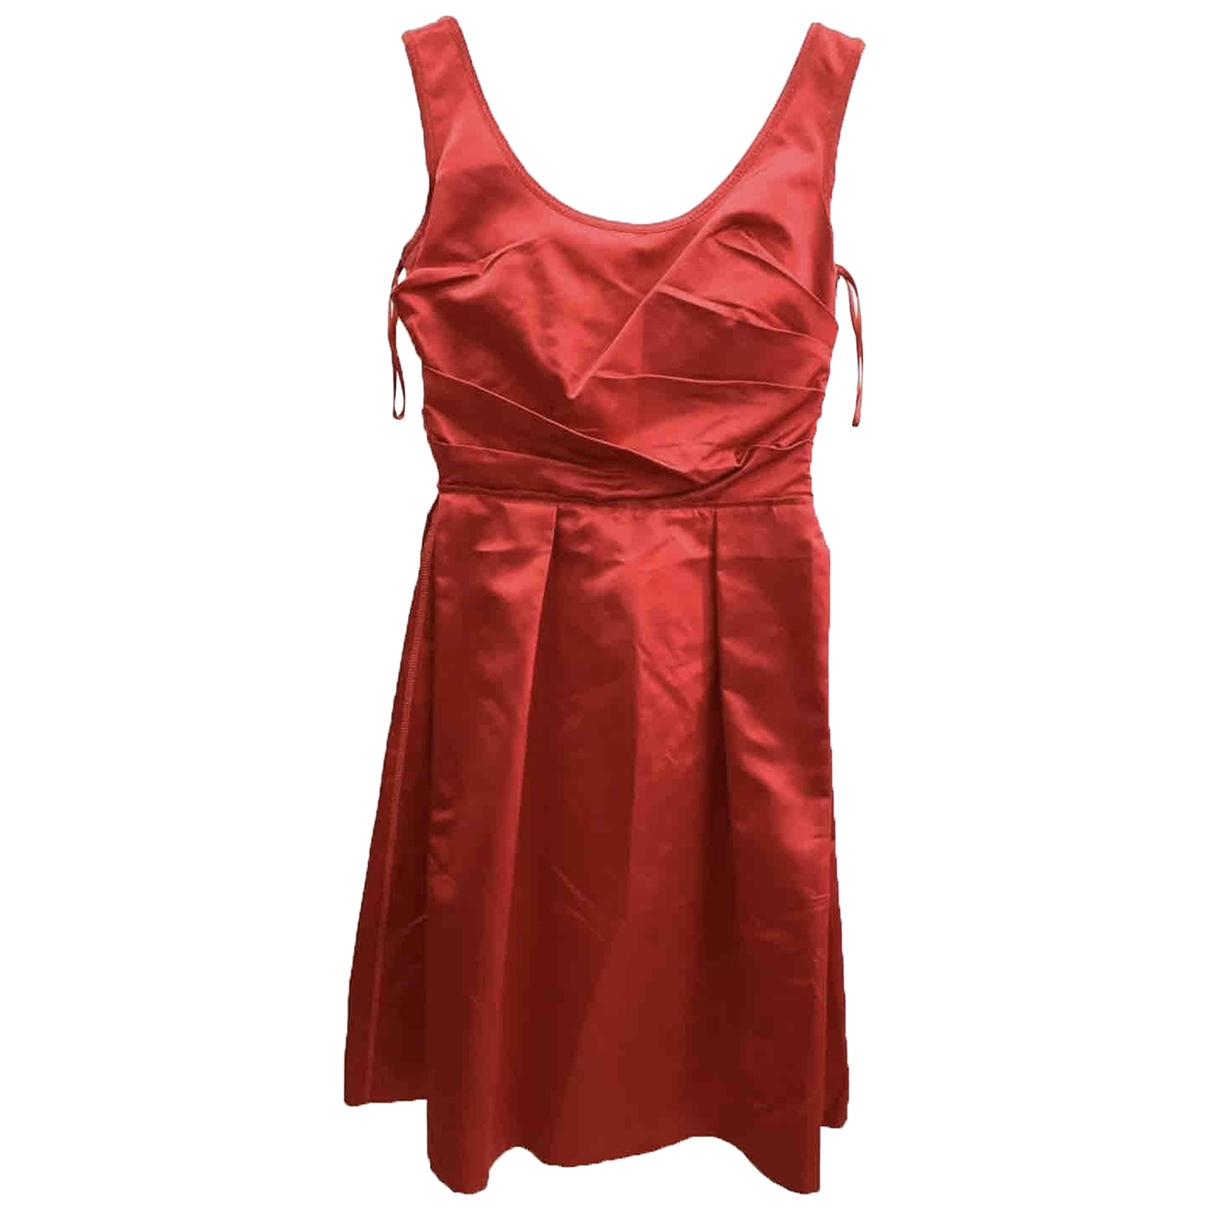 Prada \N Red Silk dress for Women 38 IT